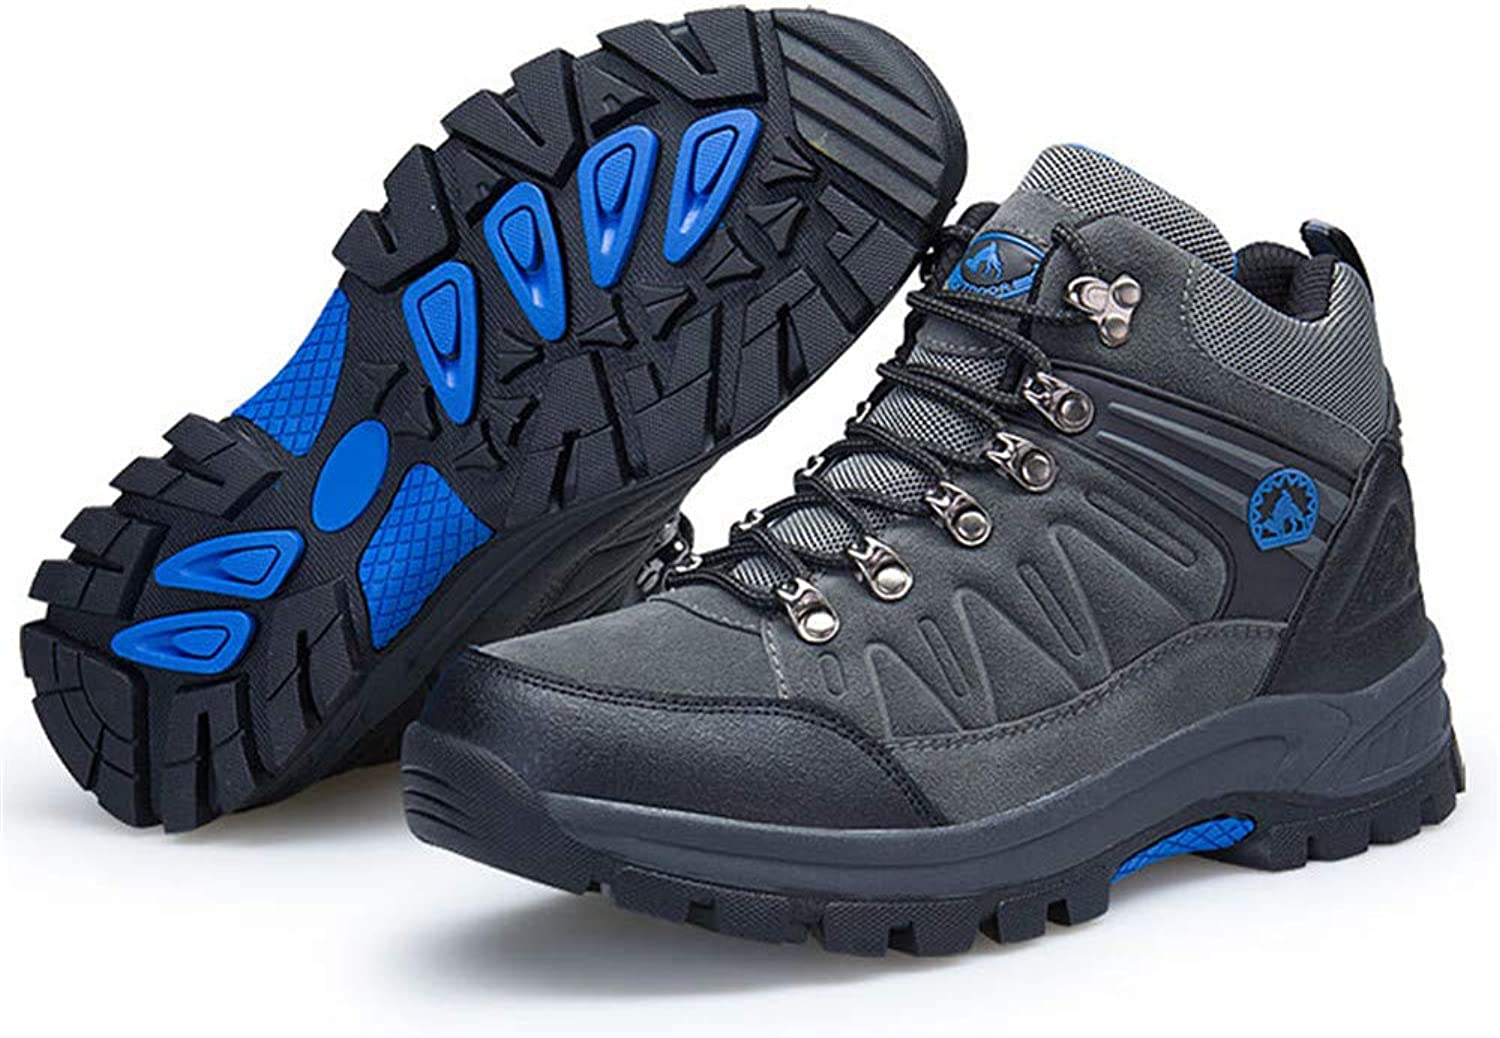 331fbea40c19f TMSE Outdoor Hiking Men Autumn and Winter Black Help, shoes ...